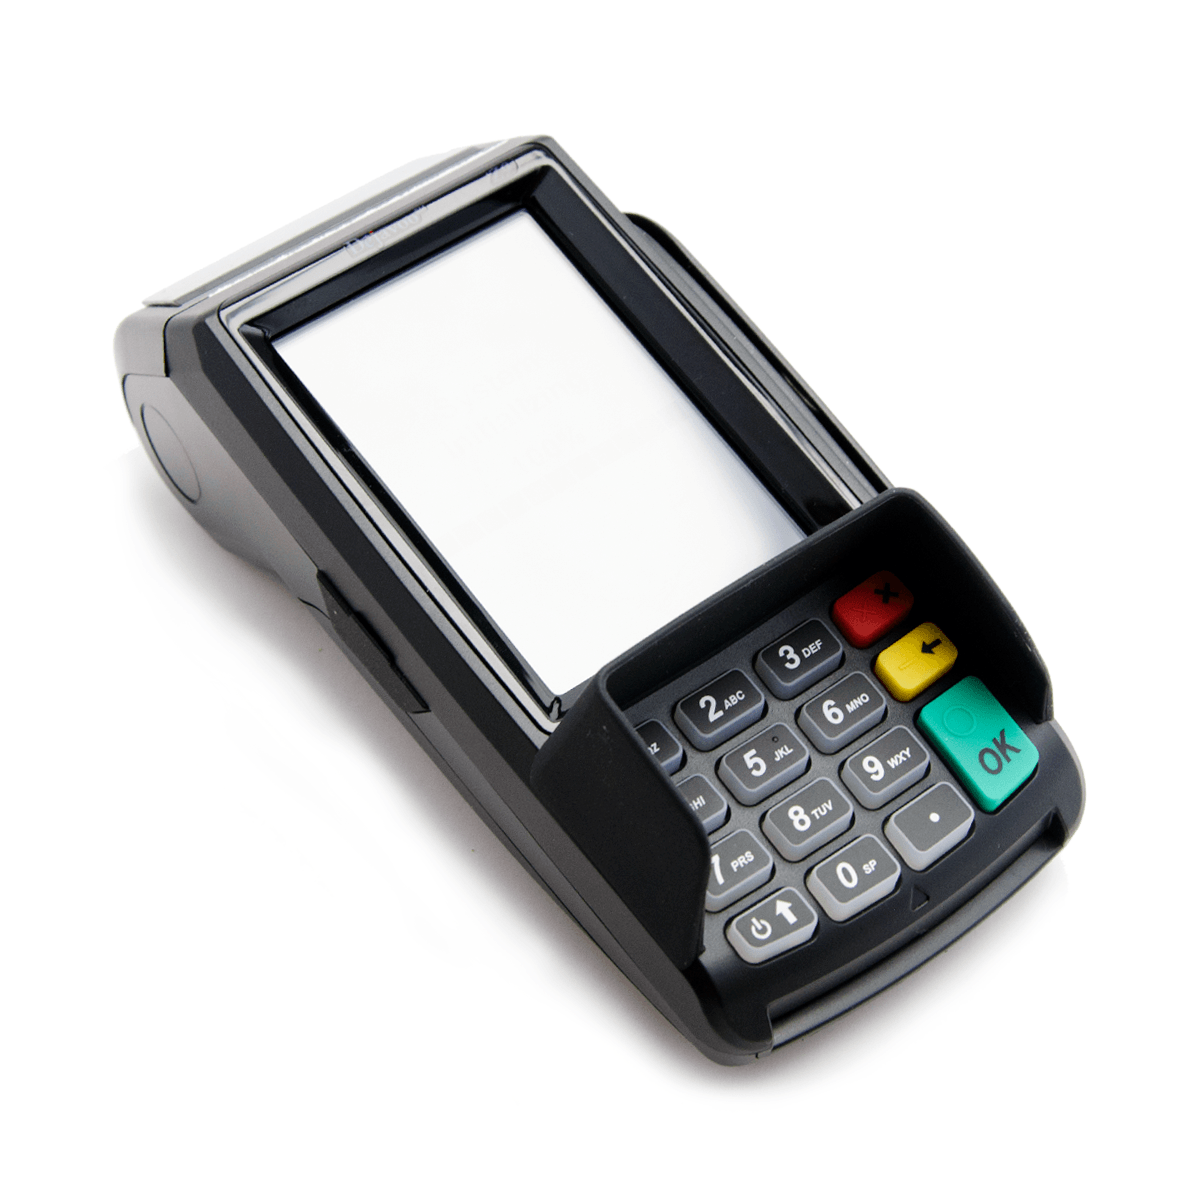 Point of sale equipment - Touch screen